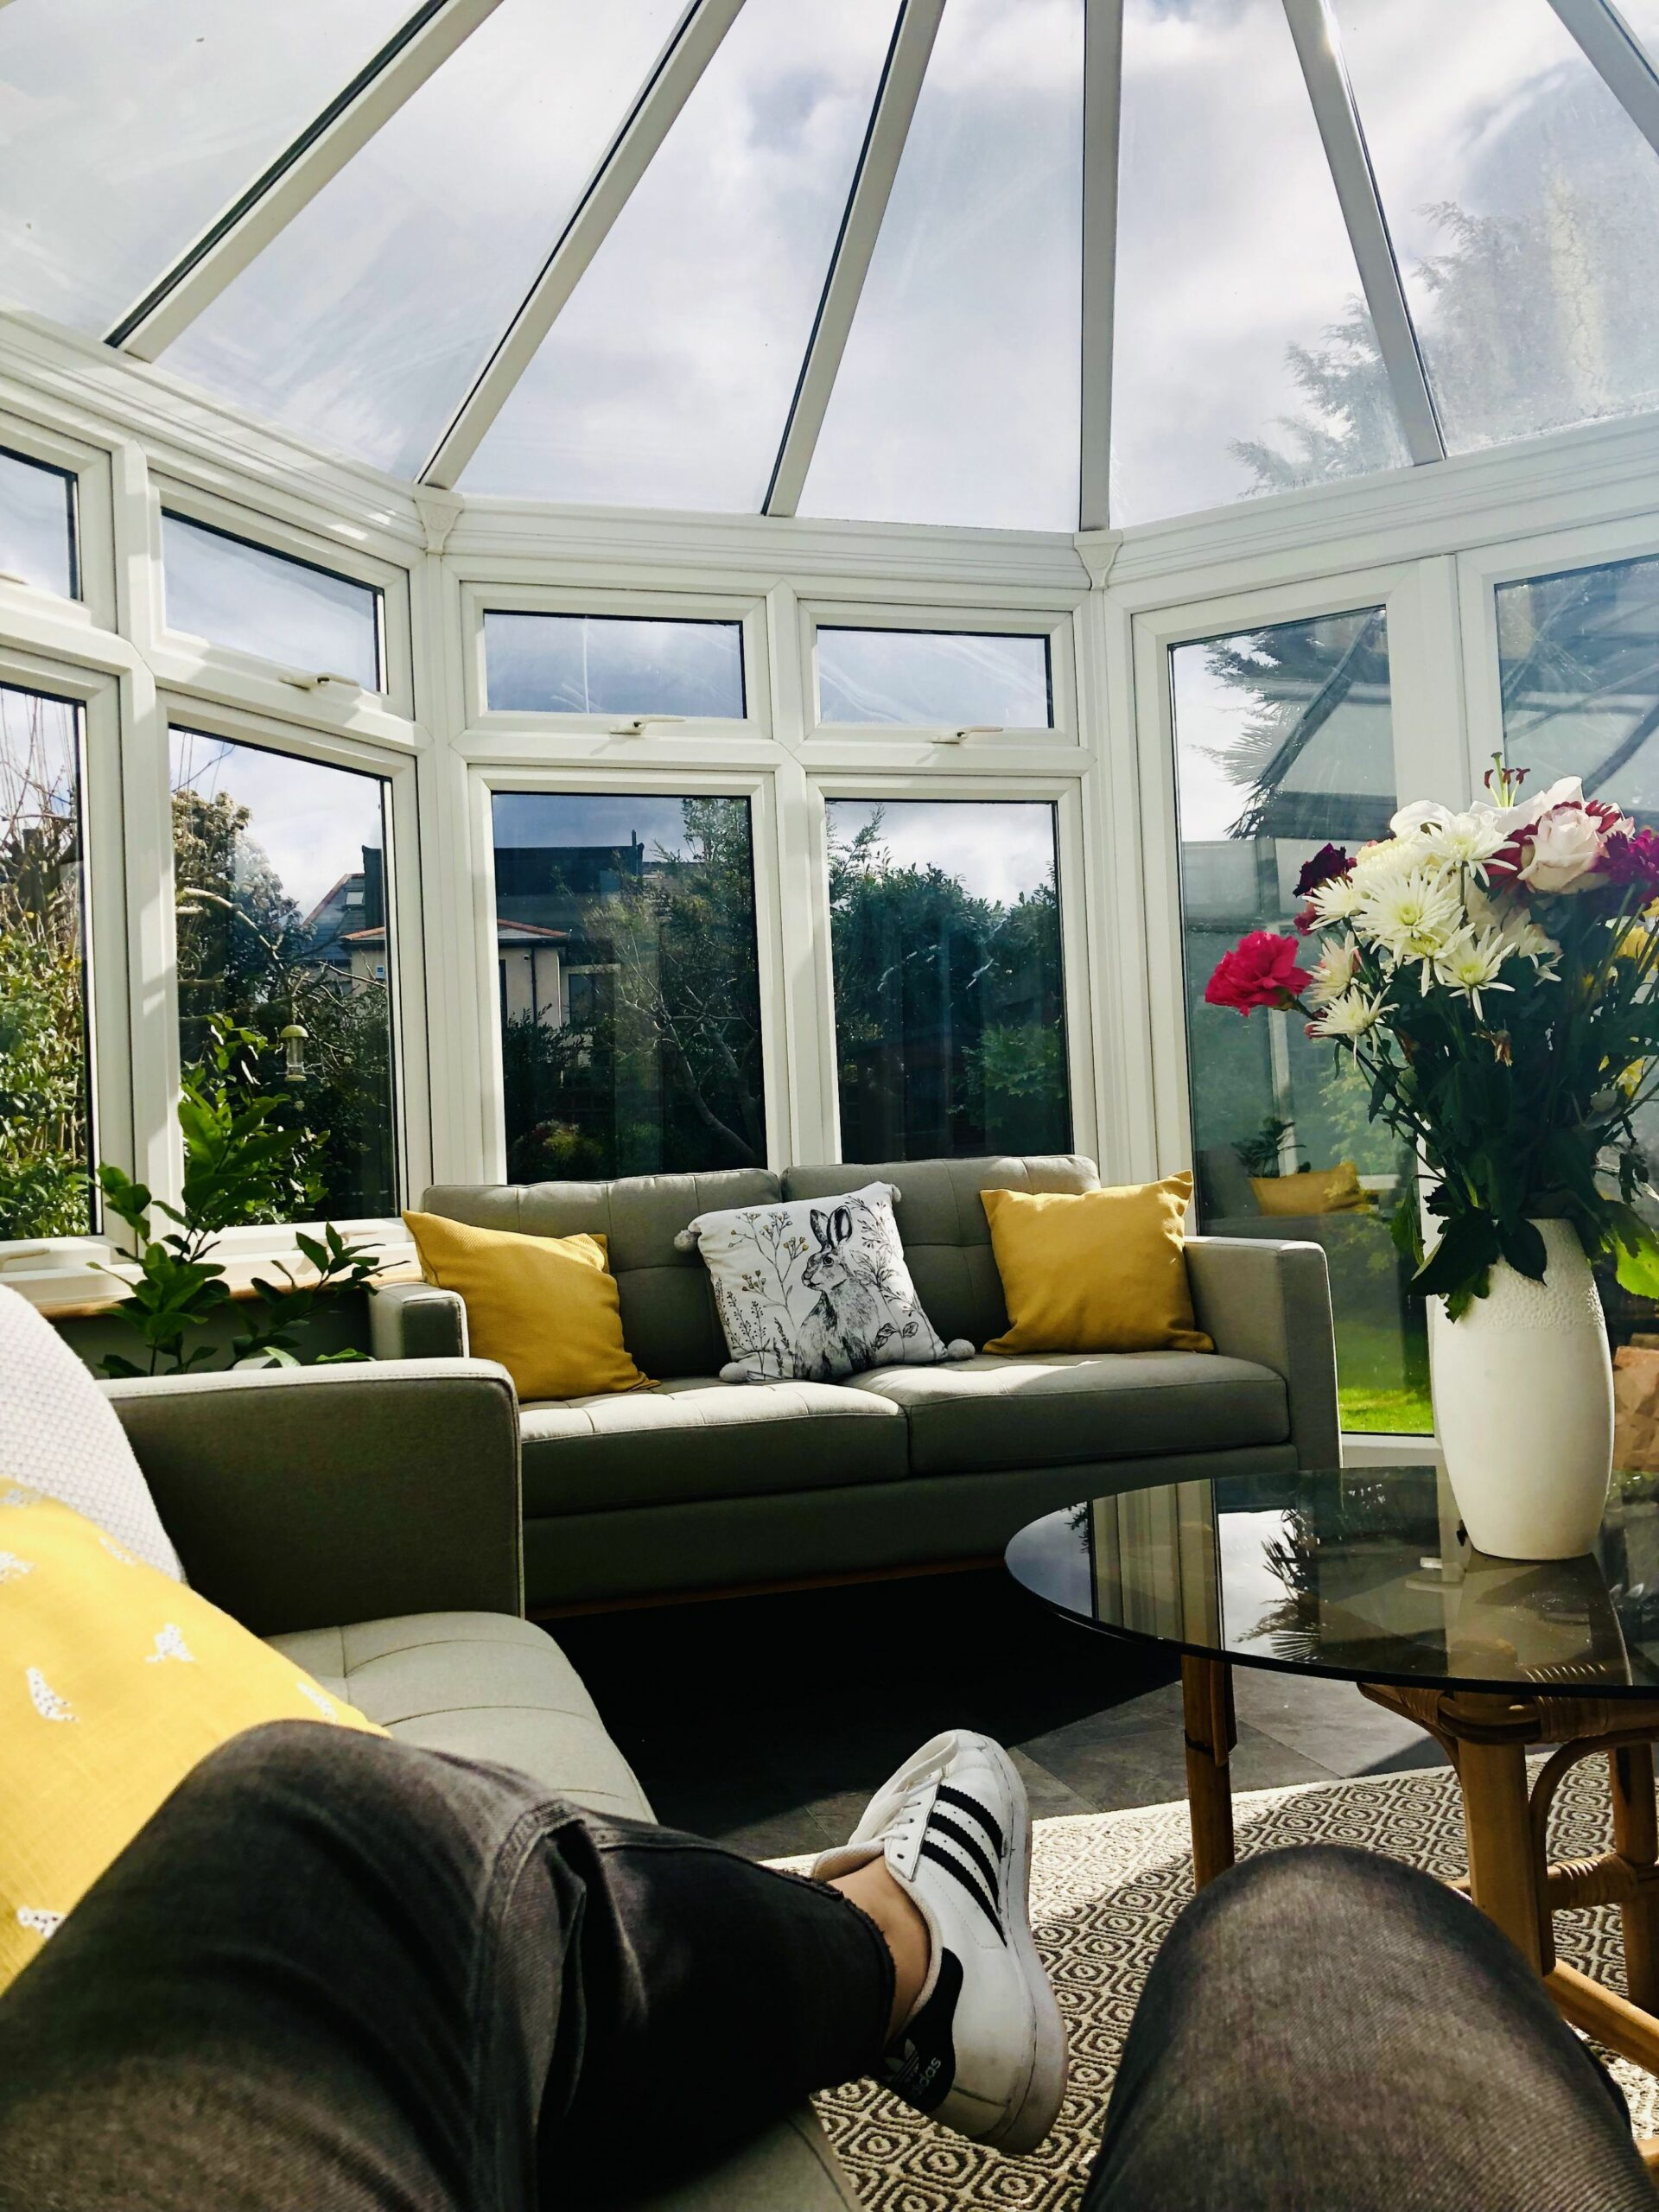 Grey and mustard theme (With images) | Conservatory decor, House ..